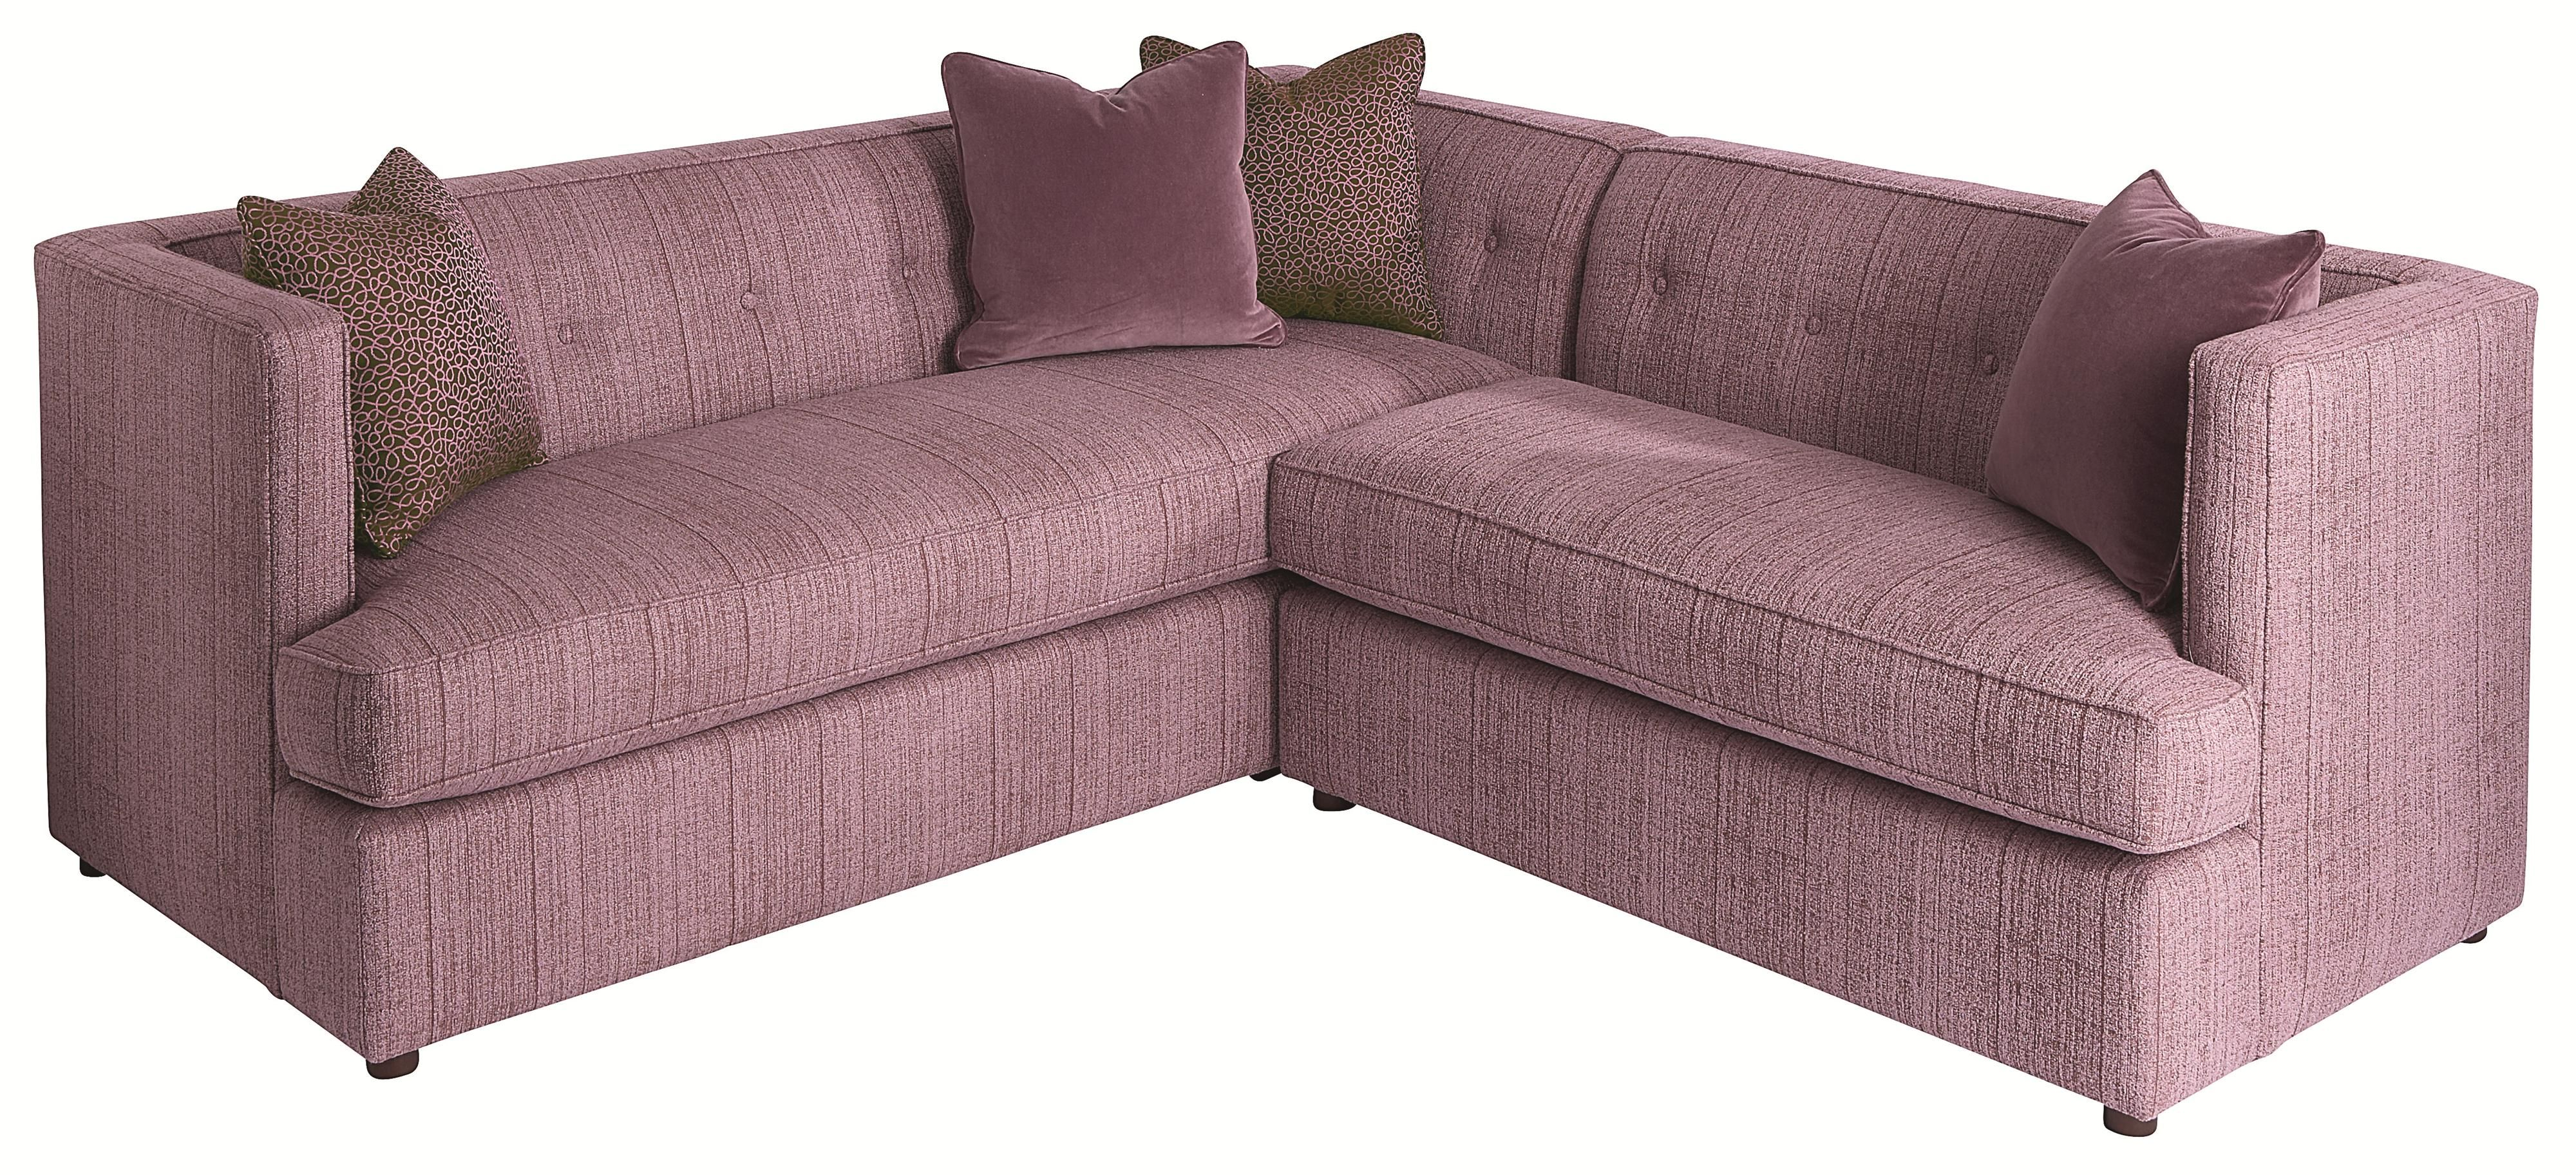 Upholstery Diva Divine Contemporary Sectional Sofa By HGTV Home Furniture  Collection